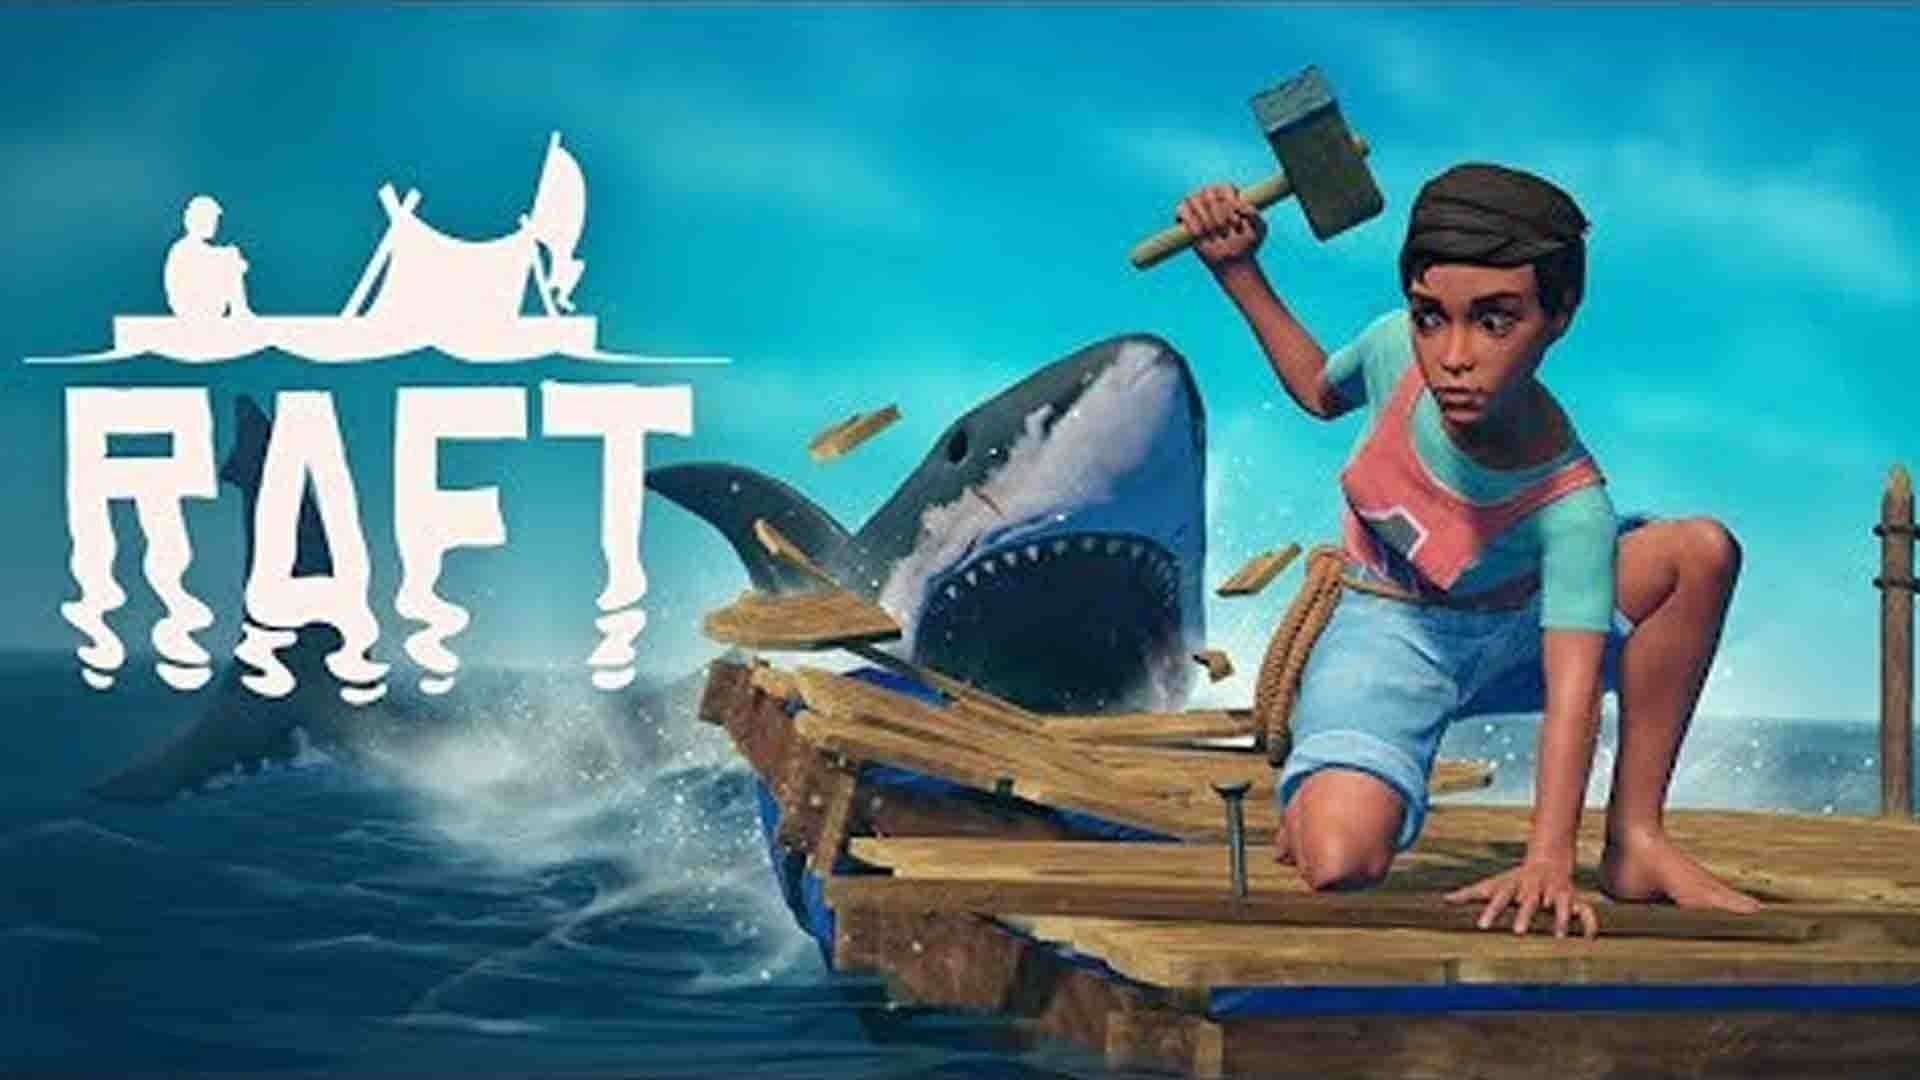 Raft - A week since the release - Survivethis